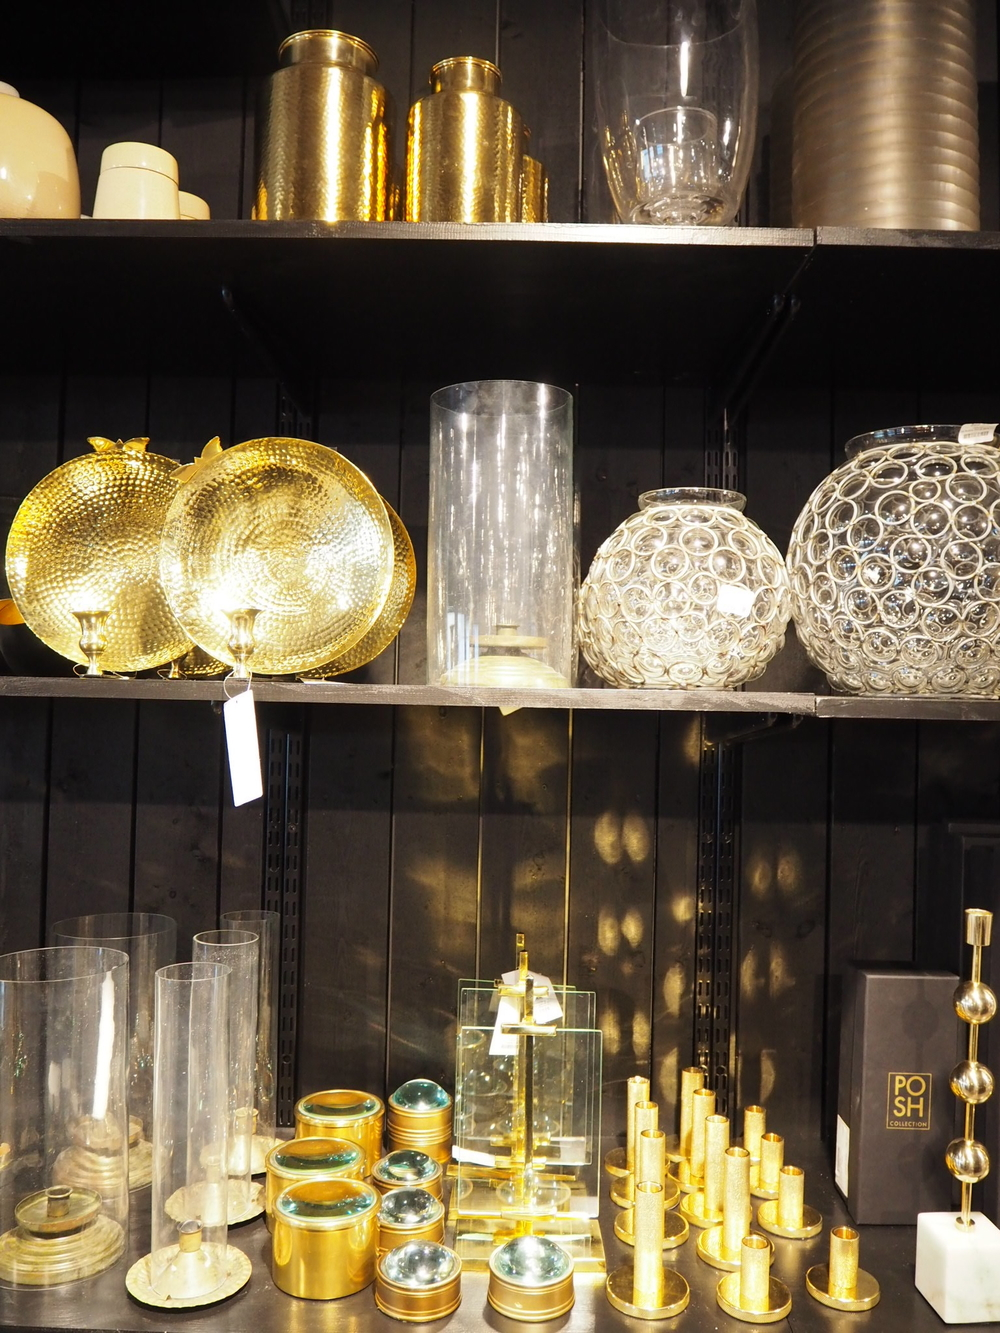 Brass candle sticks and vases at Posh Living, Stockholm.